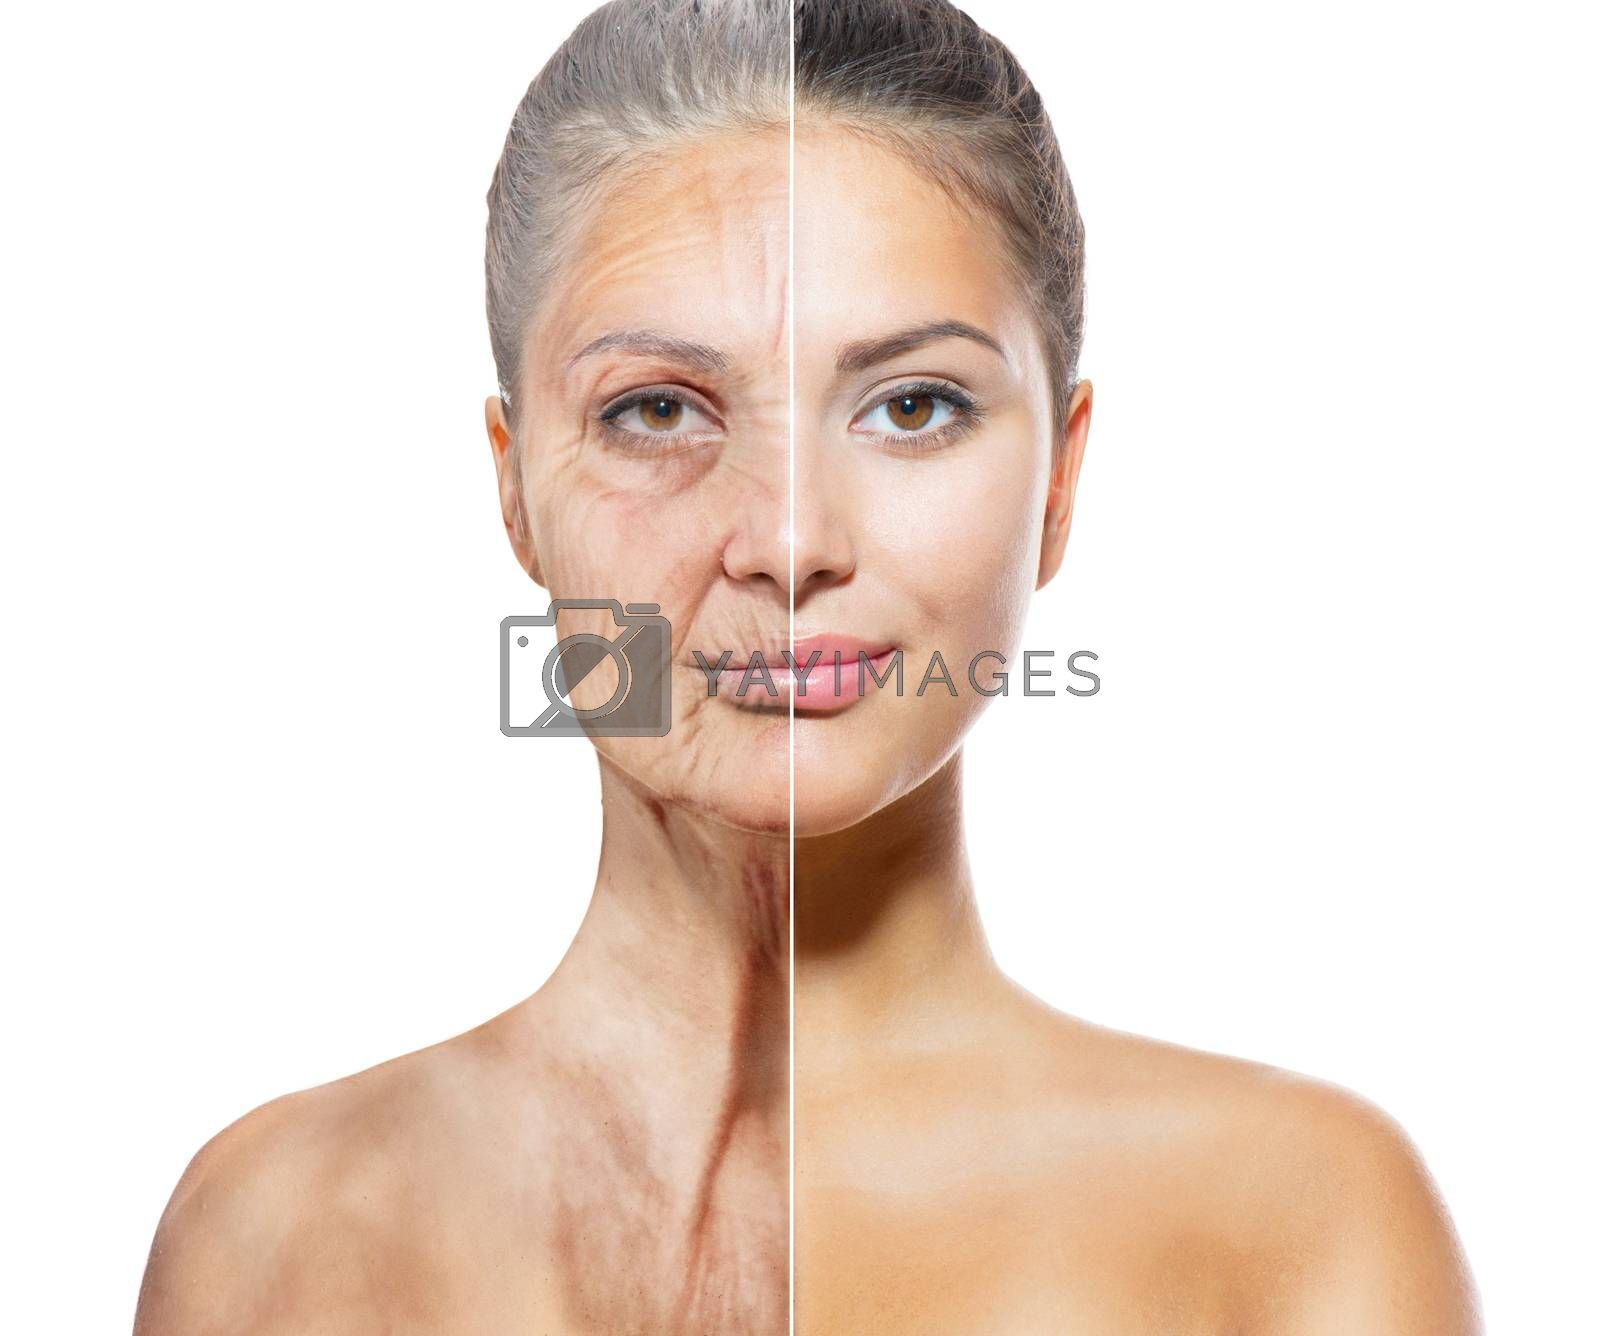 Aging and Skincare Concept. Faces of Young and Old Women